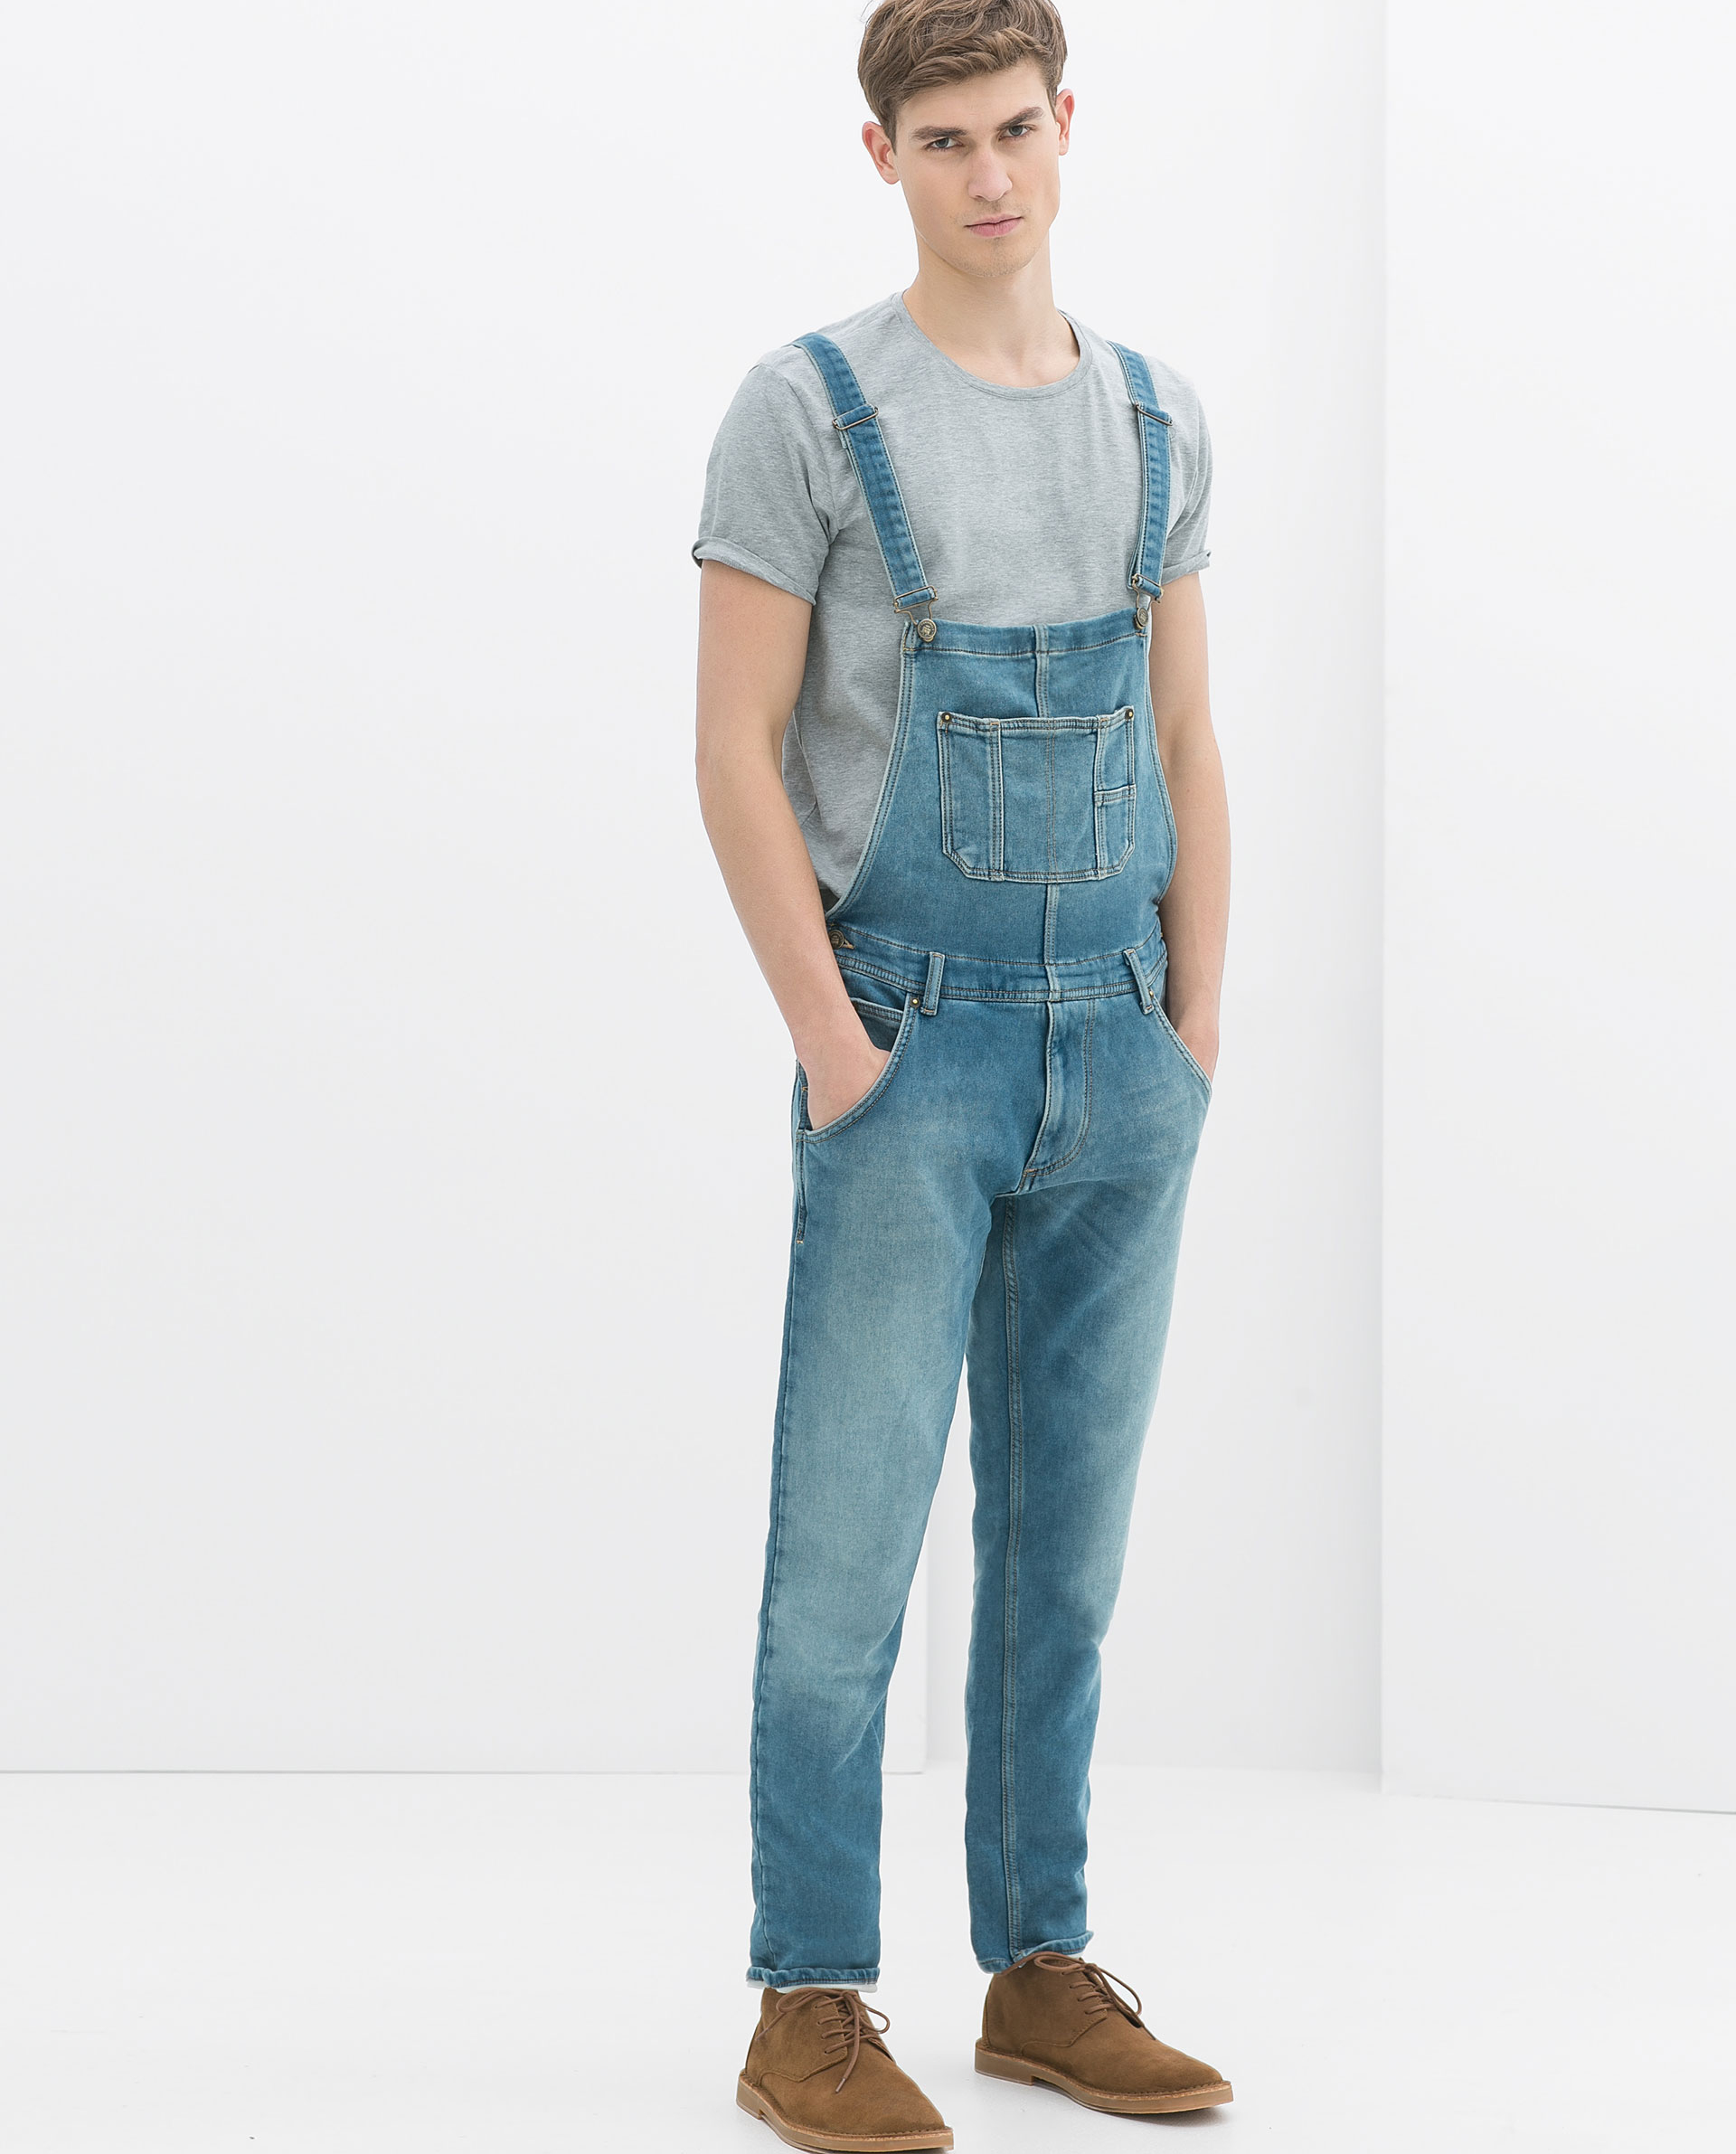 zara classic velour denim dungarees in blue for men lyst. Black Bedroom Furniture Sets. Home Design Ideas